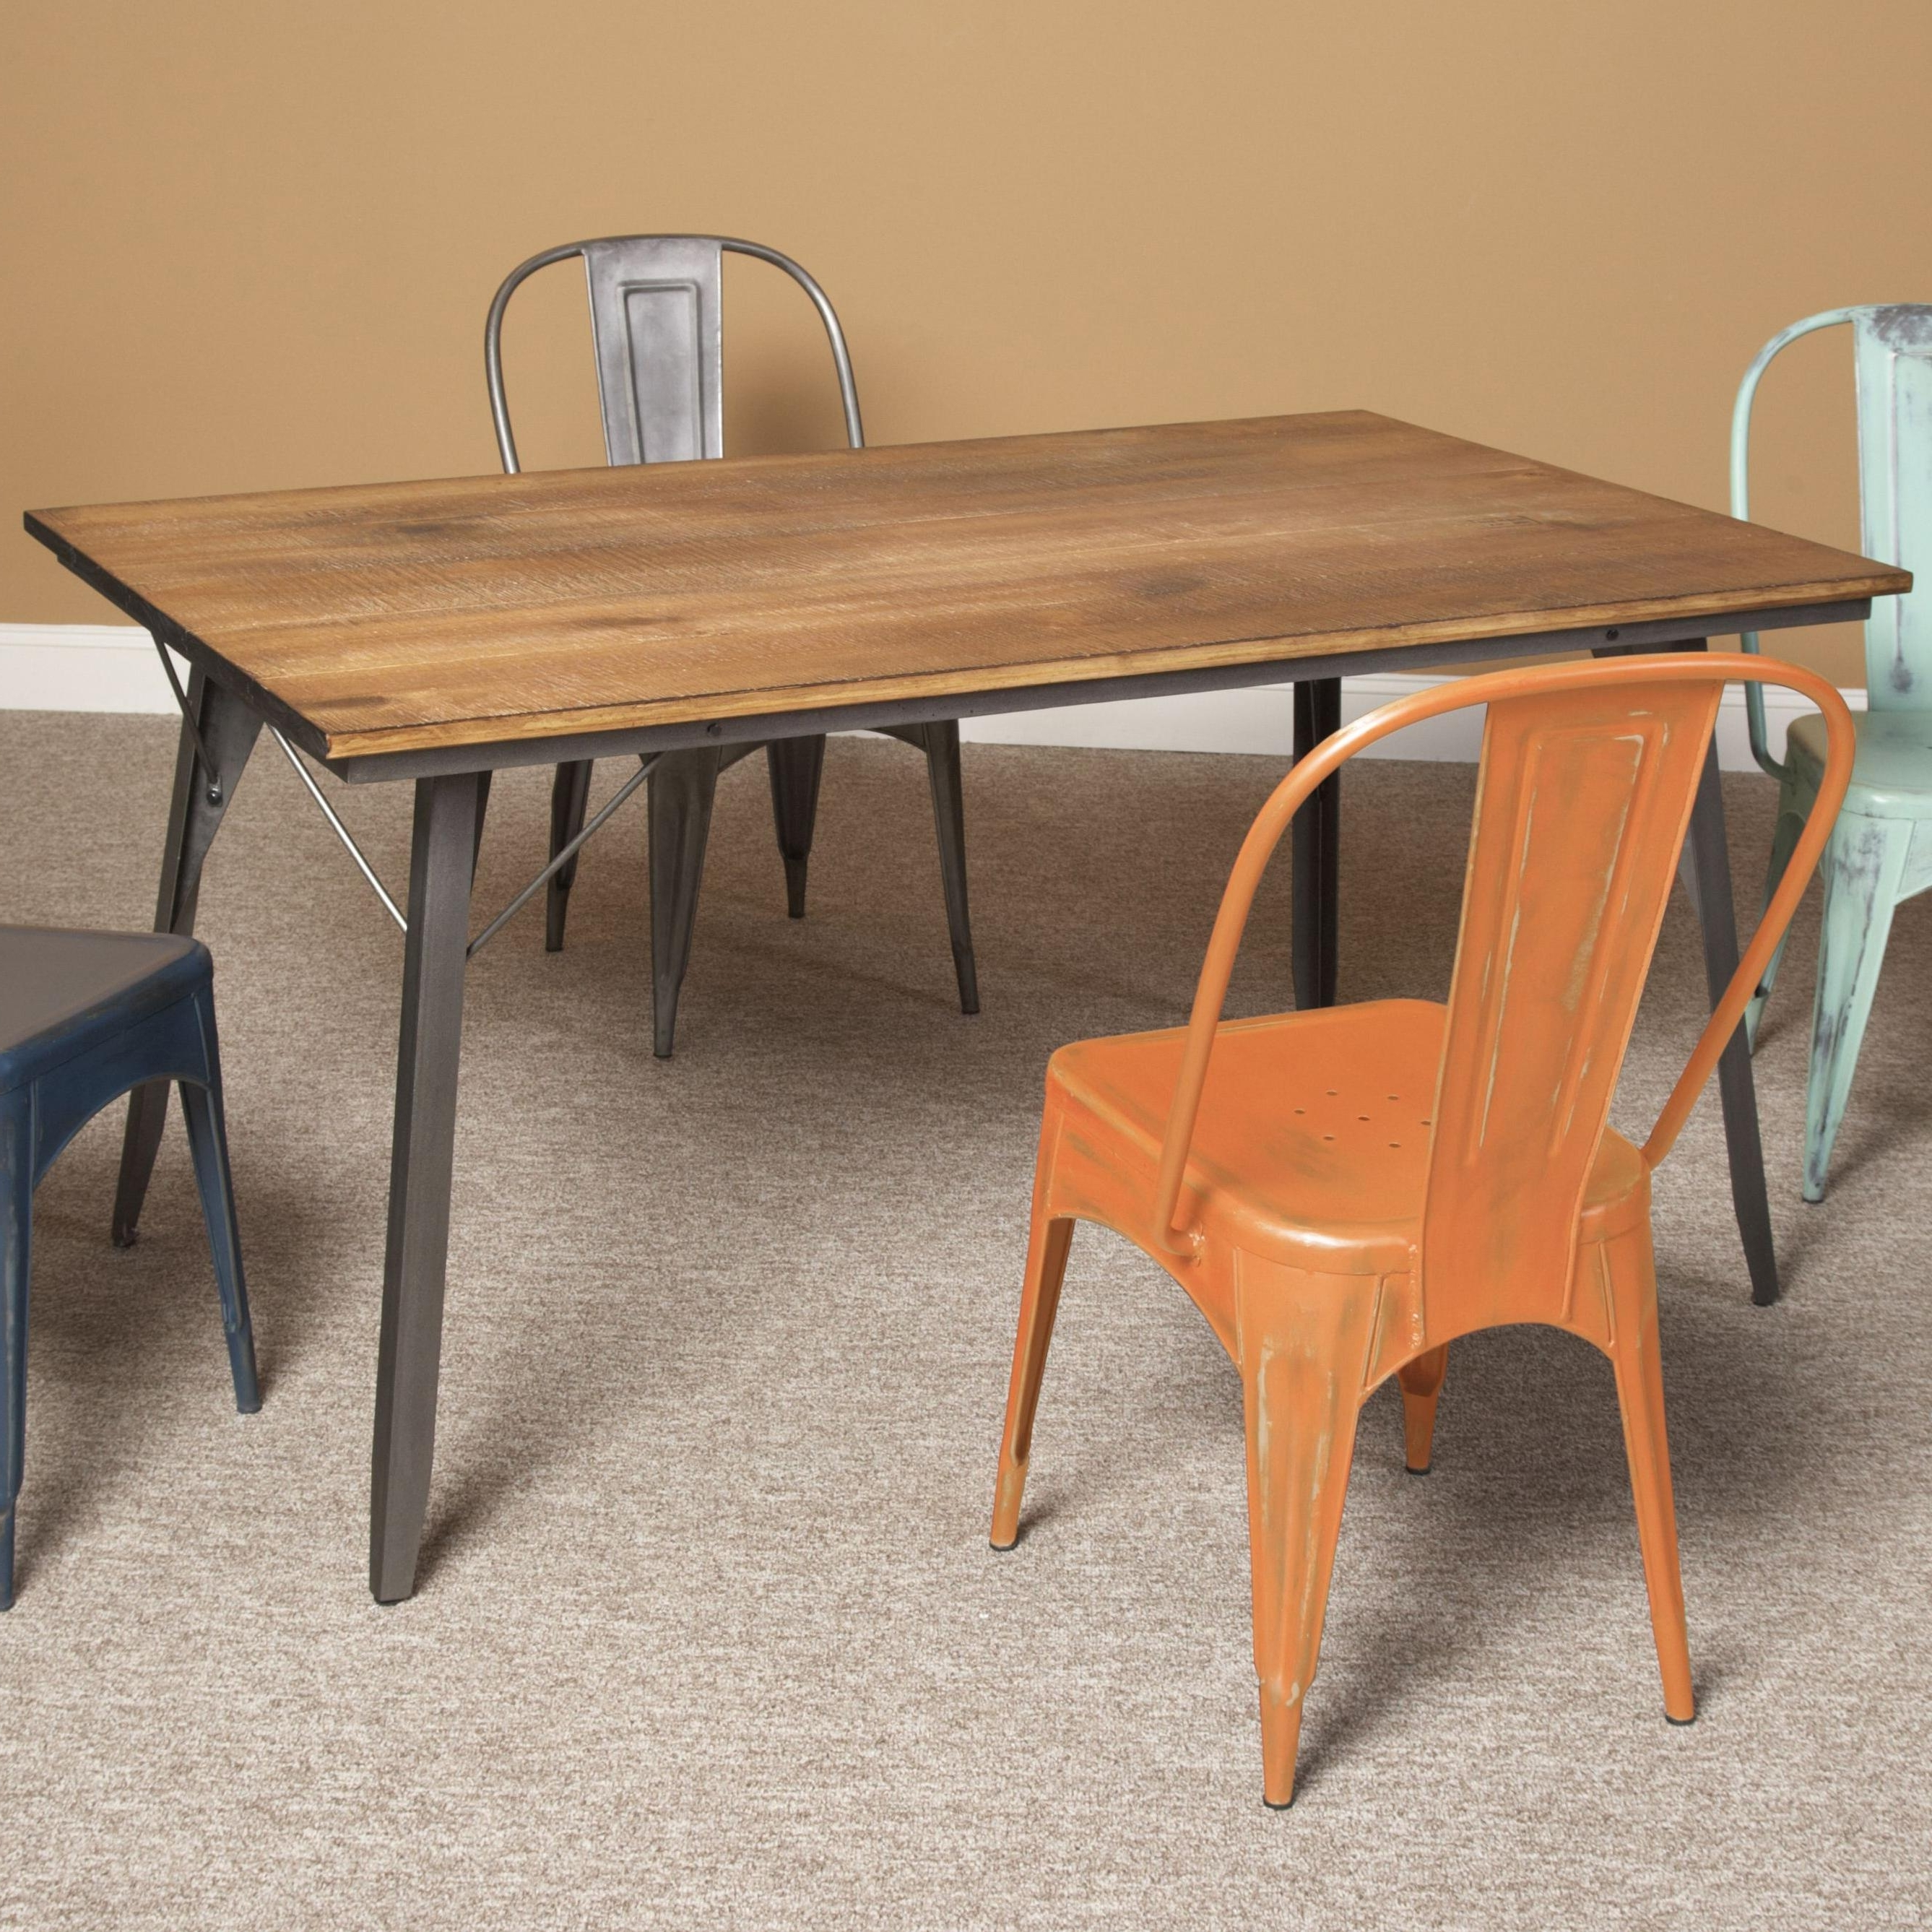 Olinde's Throughout Current Dining Tables With Metal Legs Wood Top (View 17 of 25)